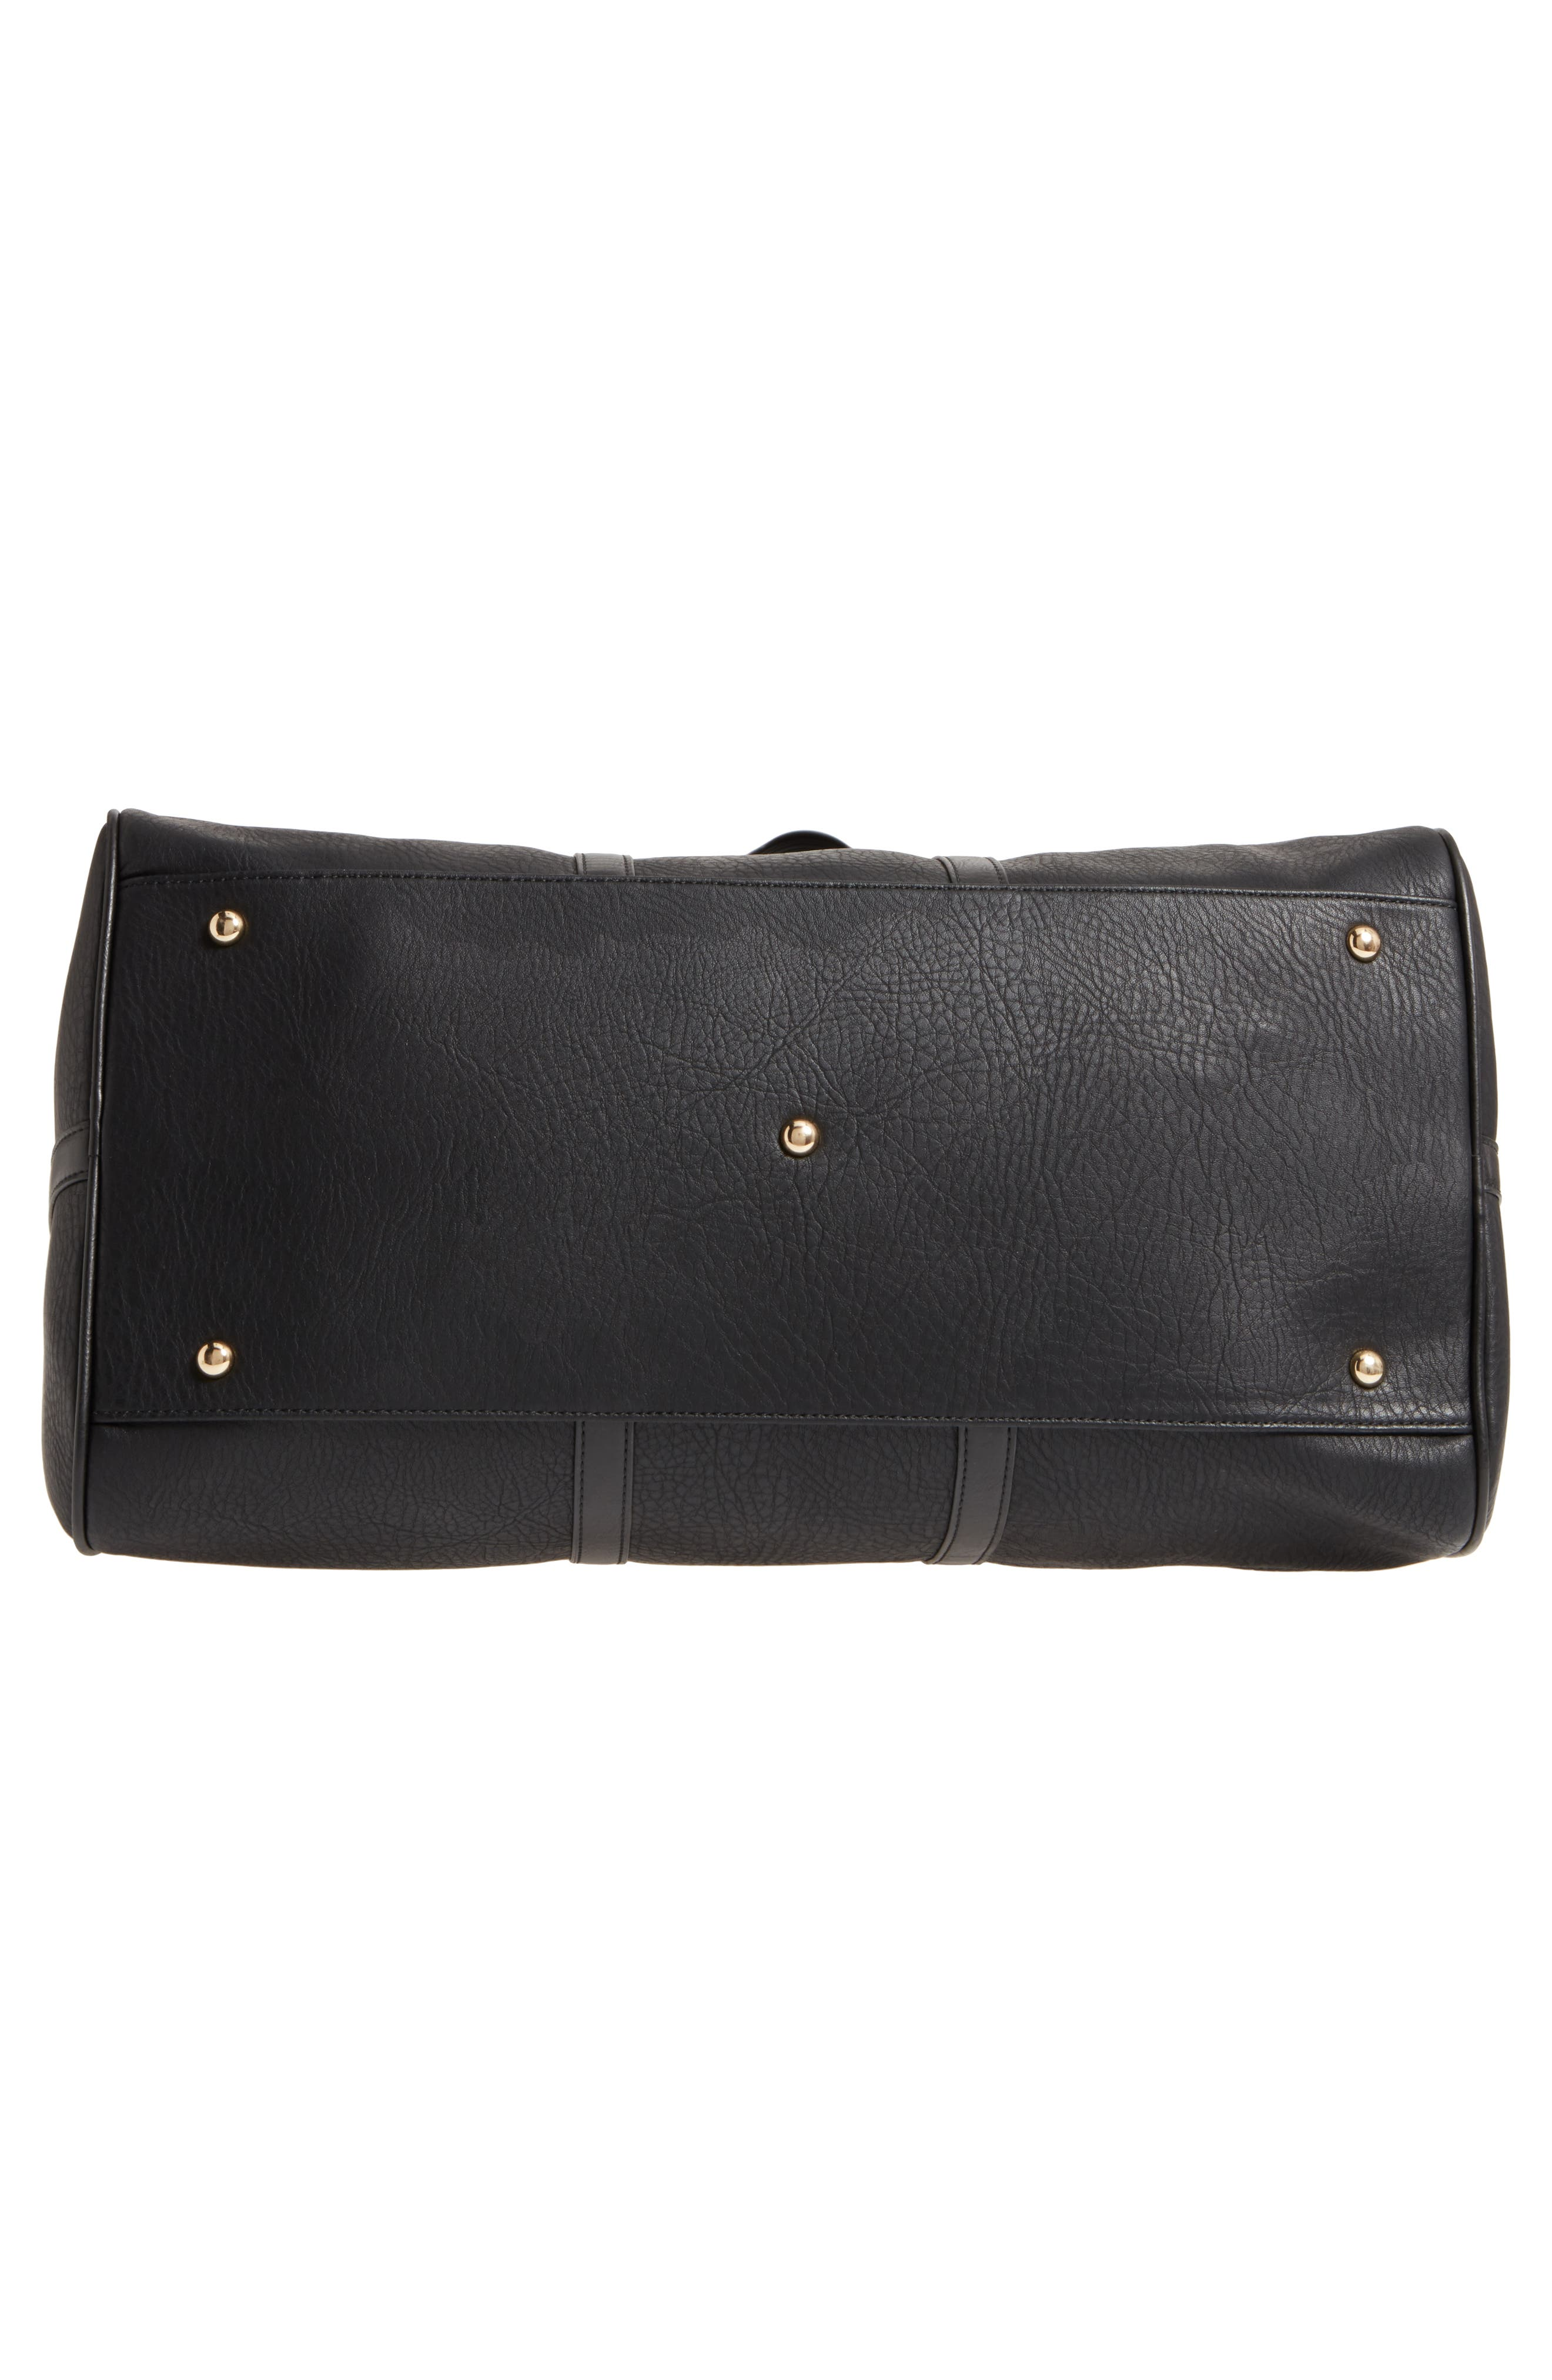 'Cassidy' Faux Leather Duffel Bag,                             Alternate thumbnail 6, color,                             002